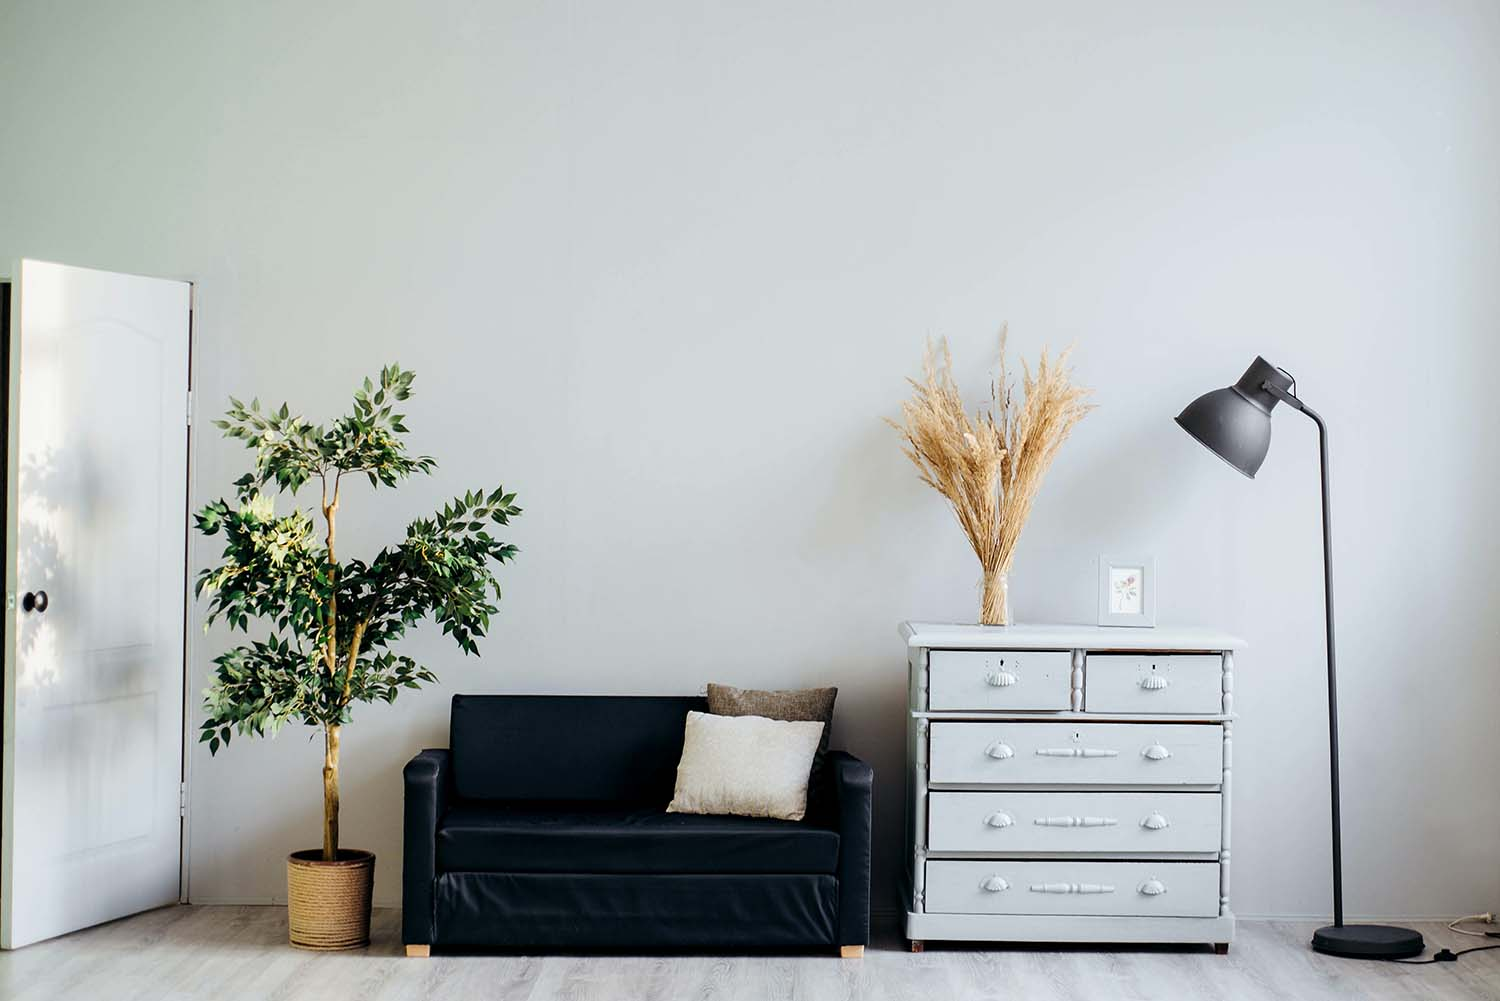 Update your home's style